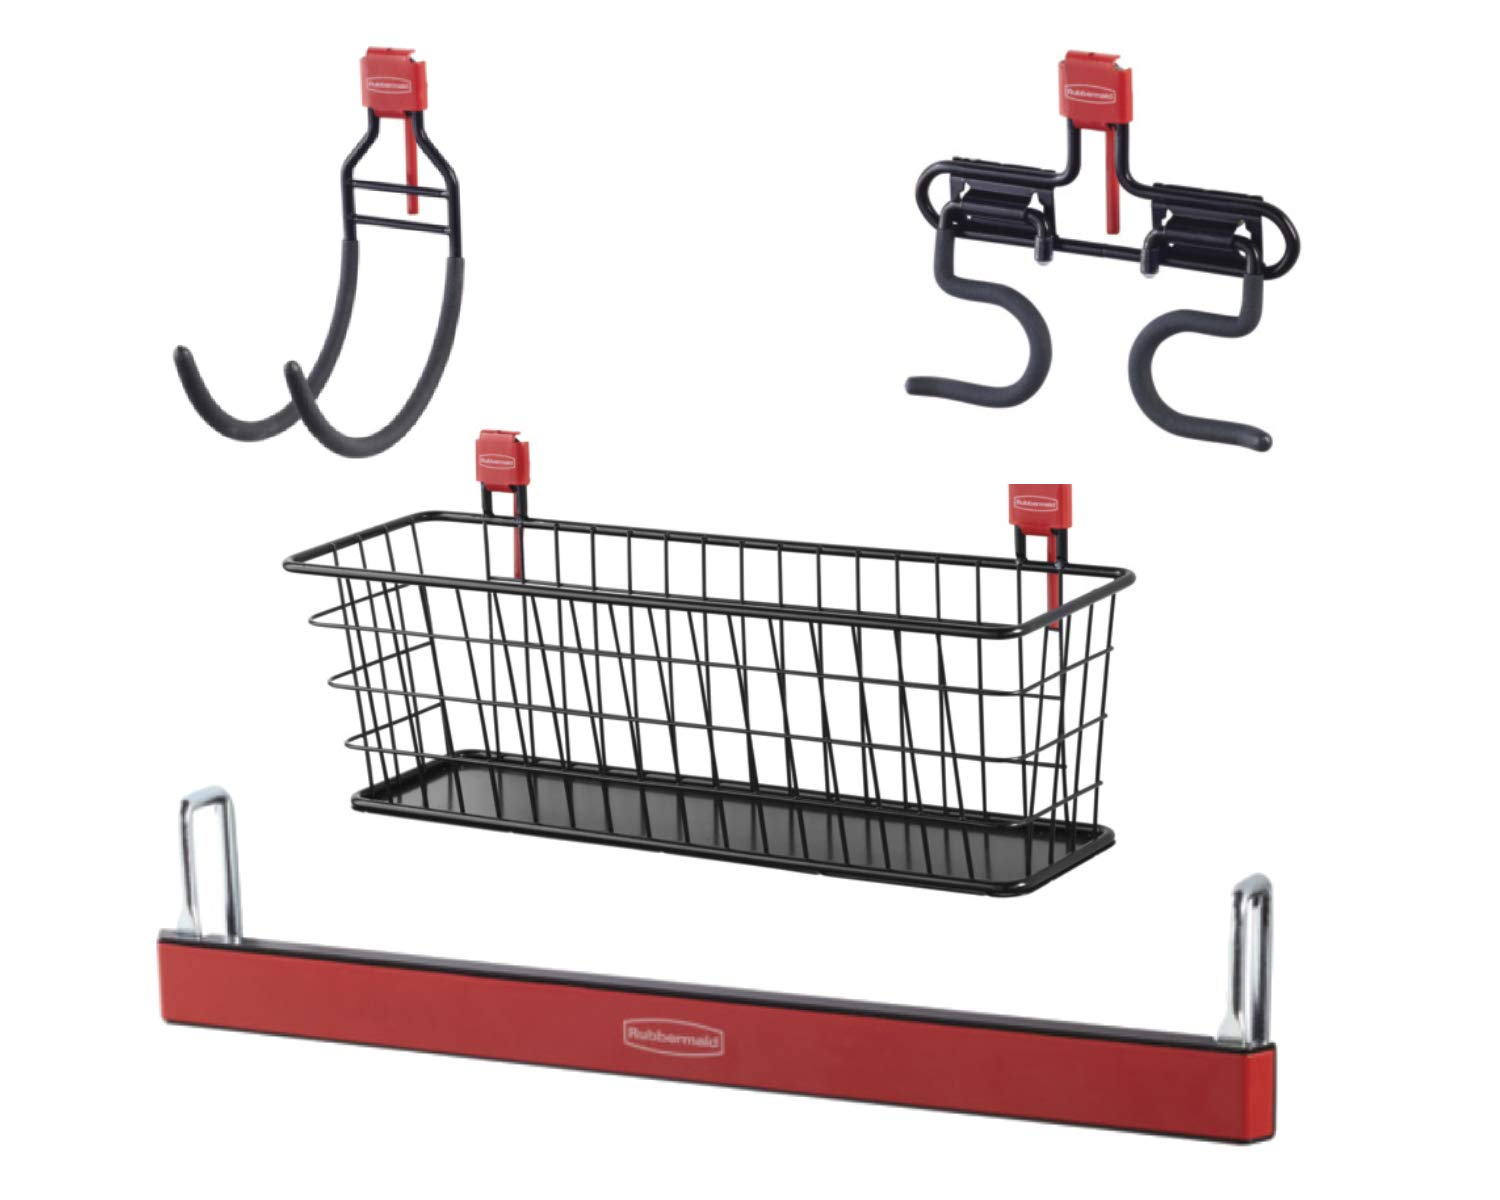 Rubbermaid Shed Variety Accessory Kit